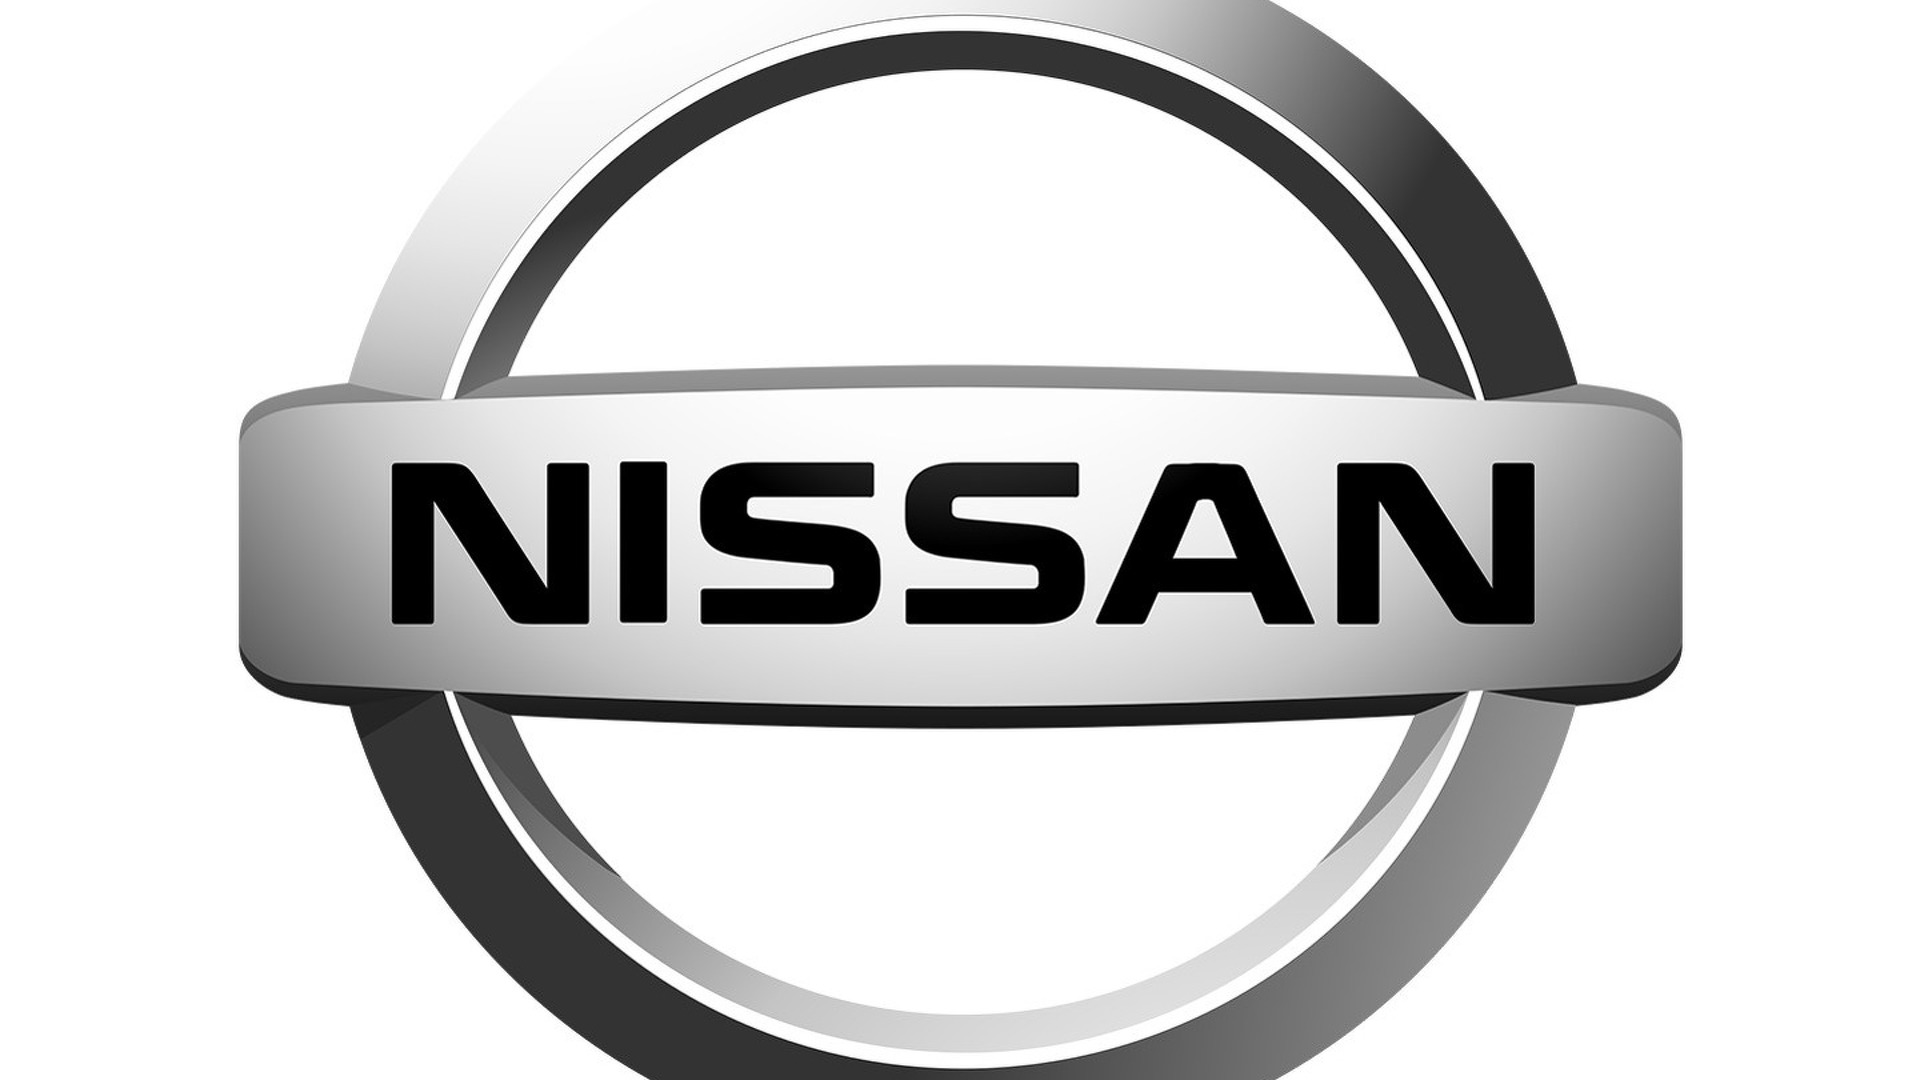 Anonymous hacks Nissan websites in anti-whaling campaign